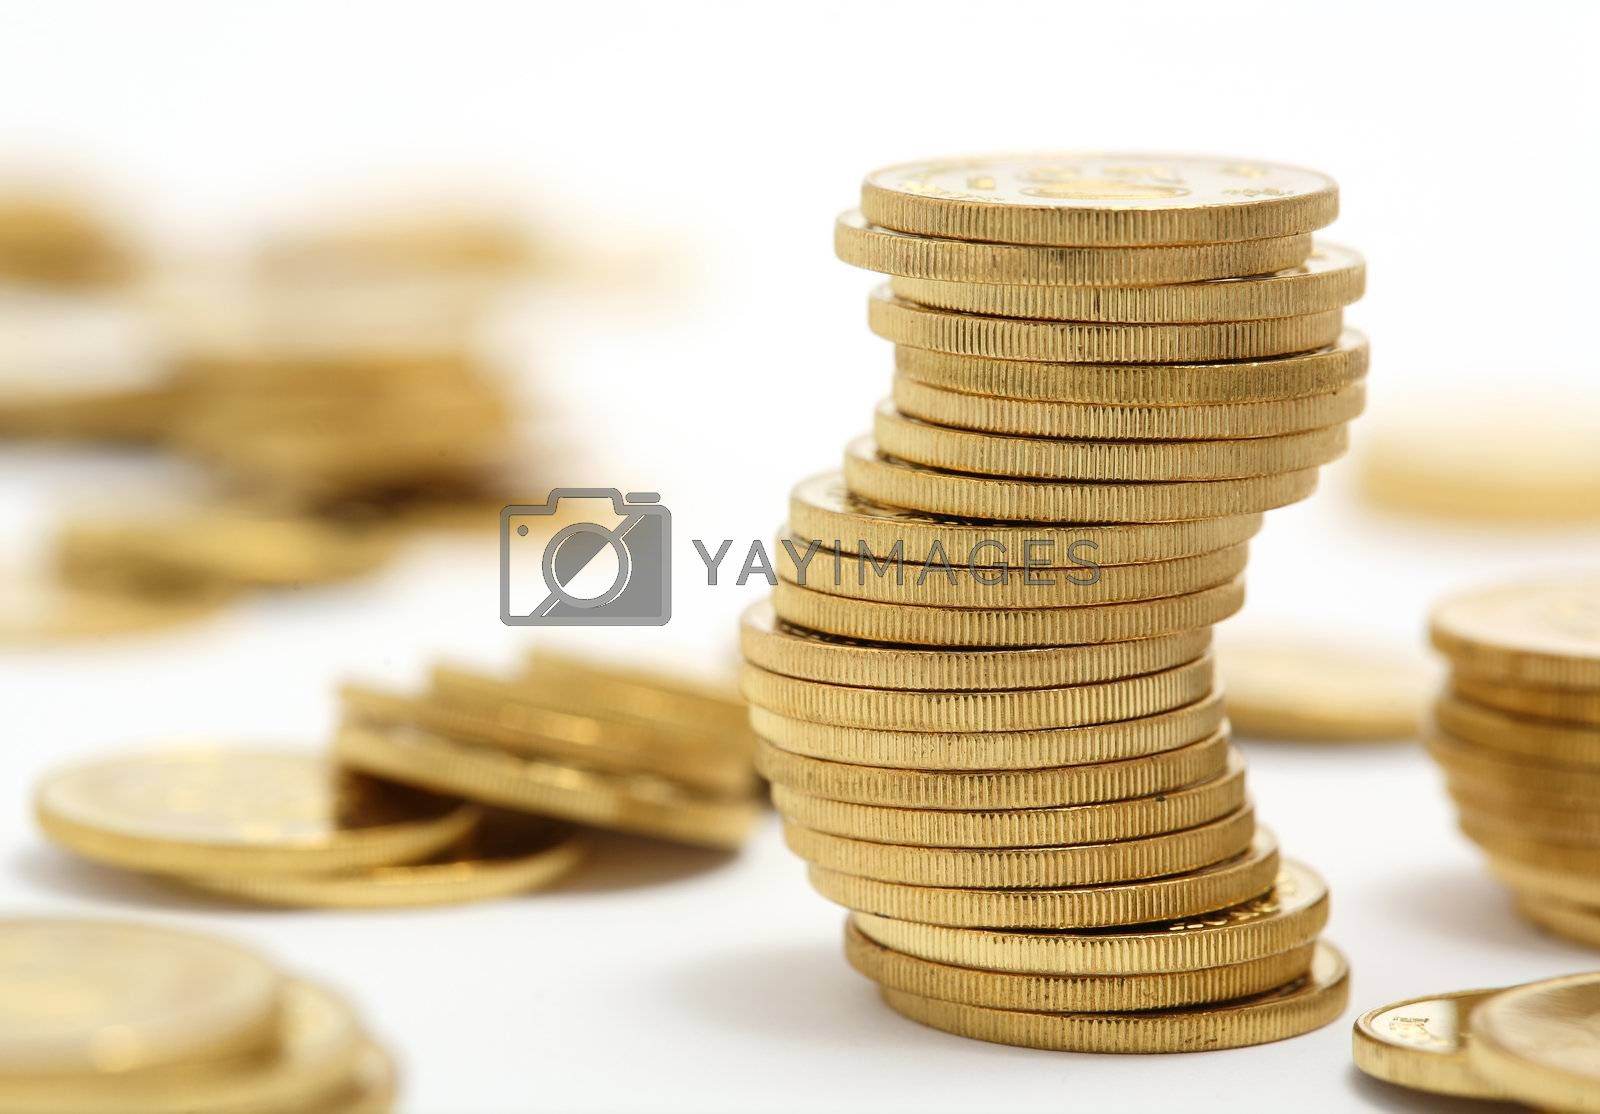 Royalty free image of coins by leungchopan